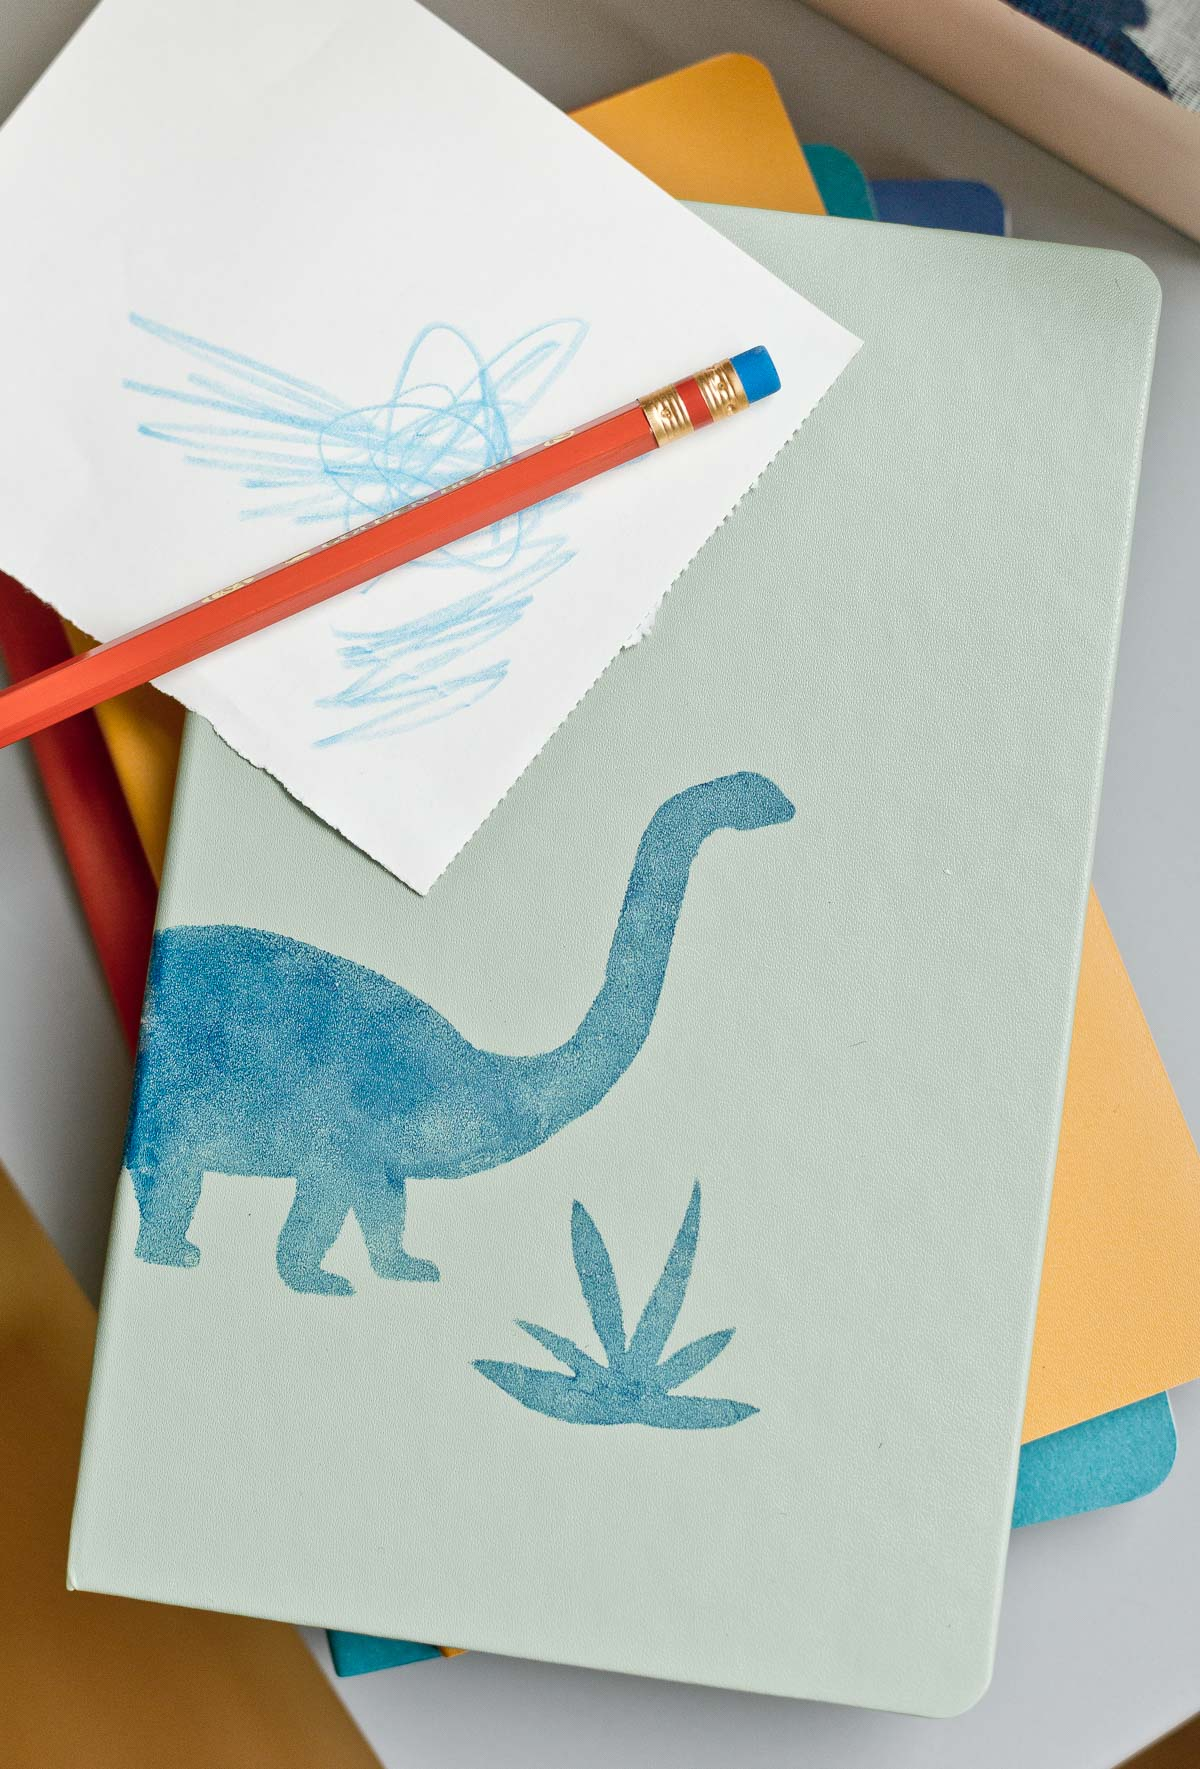 Add something custom to a plain notebook for back to school with a simple stencil. This dino and plant were stenciled on using a little paint and a stencil dauber. Click through for the DIY details (and more back to school ideas). #diy #organization #backtoschool #kidscrafts #notebook #dinosaur